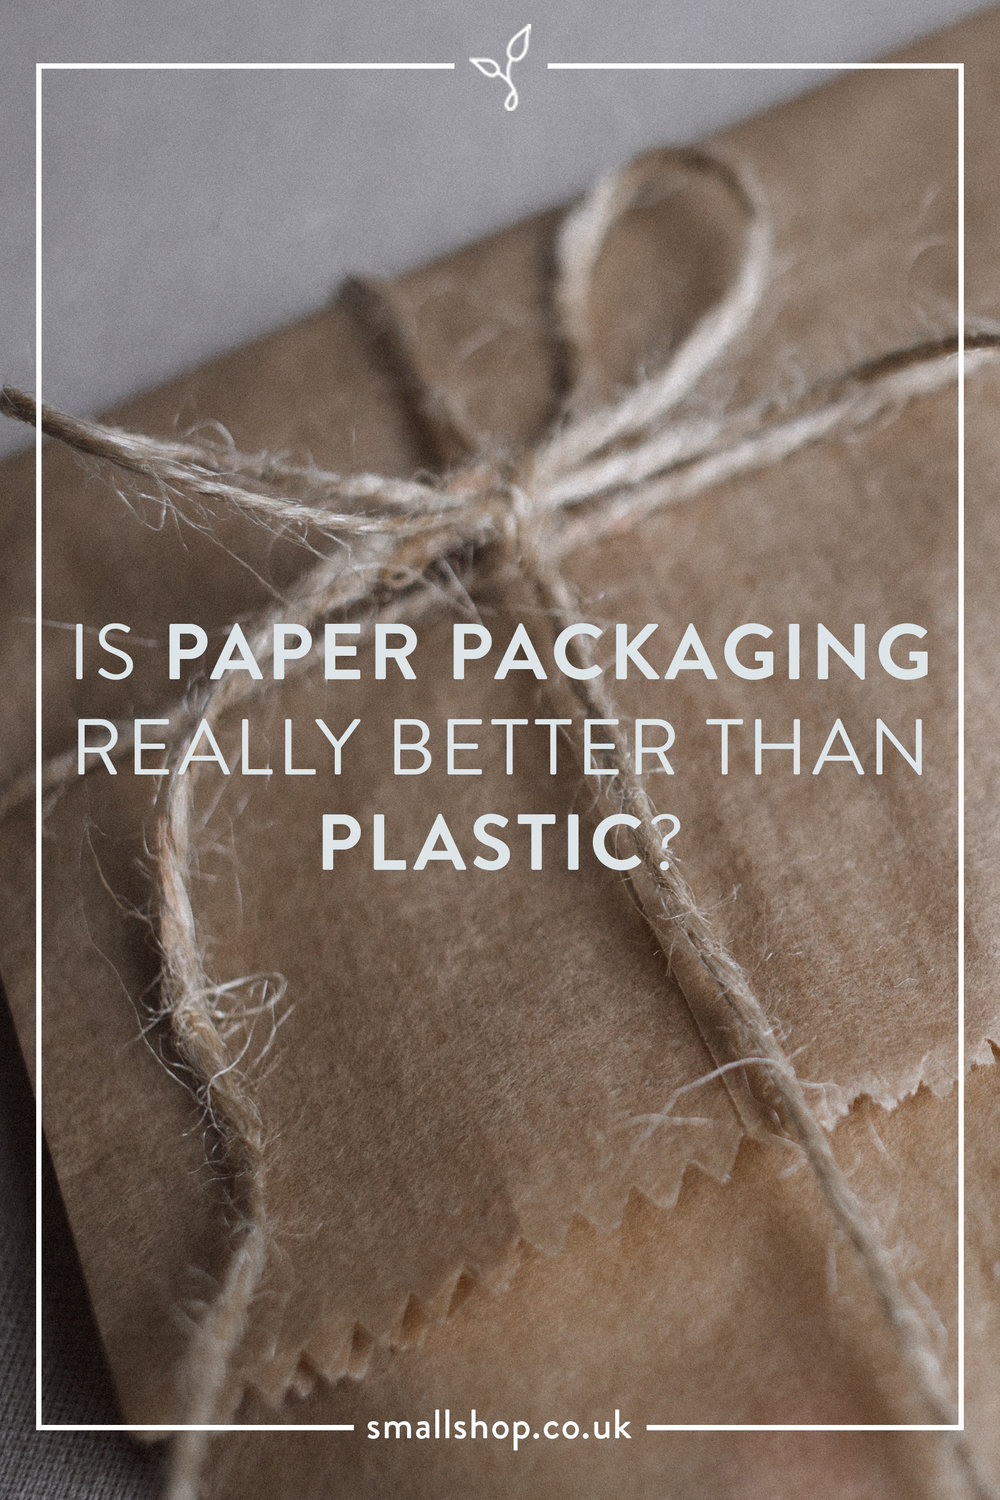 Is paper packaging really better than plastic?